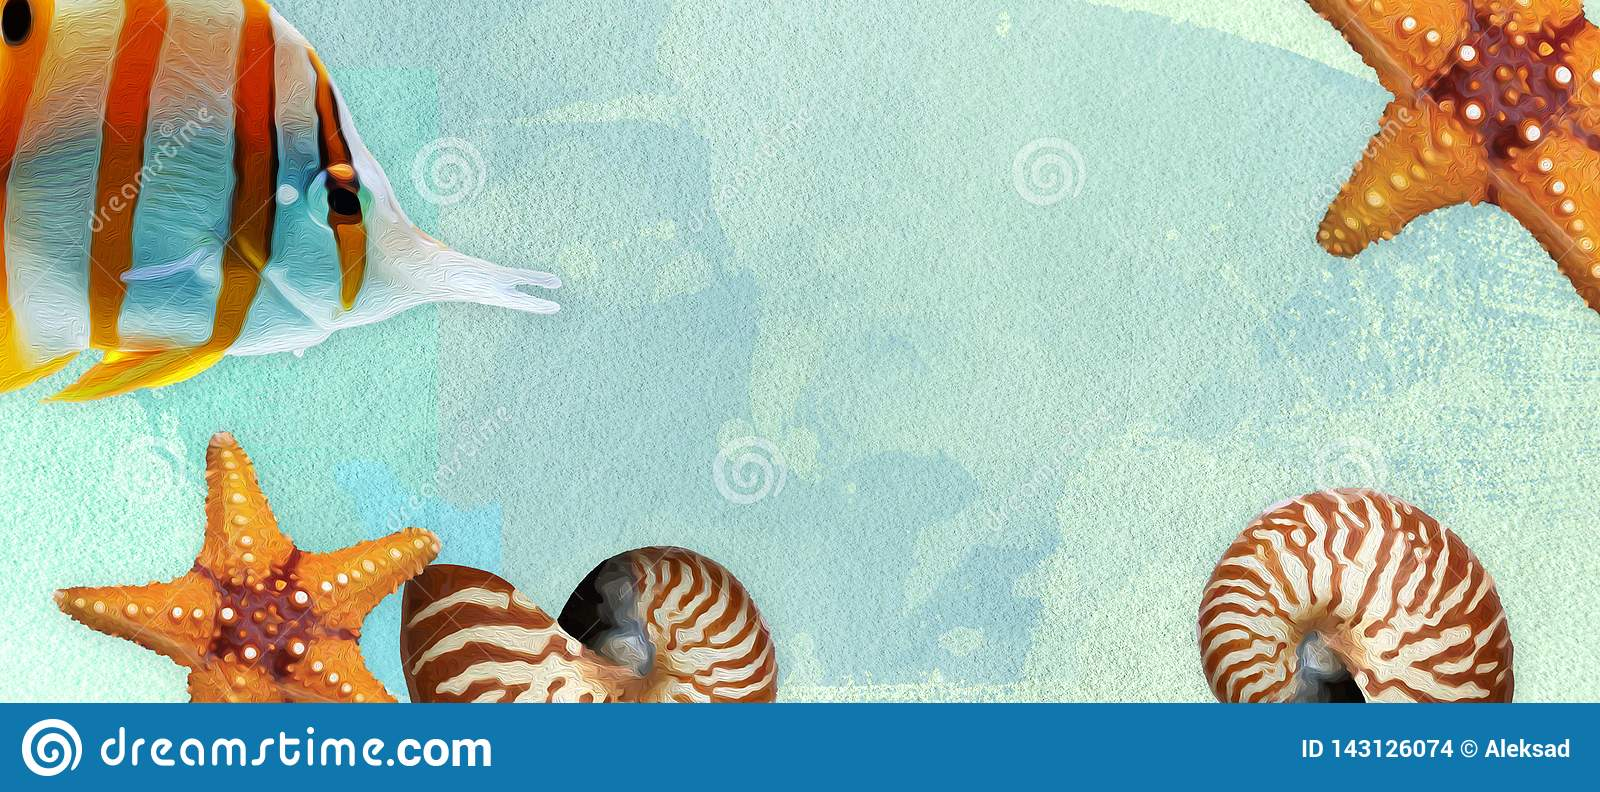 Summer banner with oil paint and watercolor brushes. Seashell, starfish and fish on a marine background with text space.